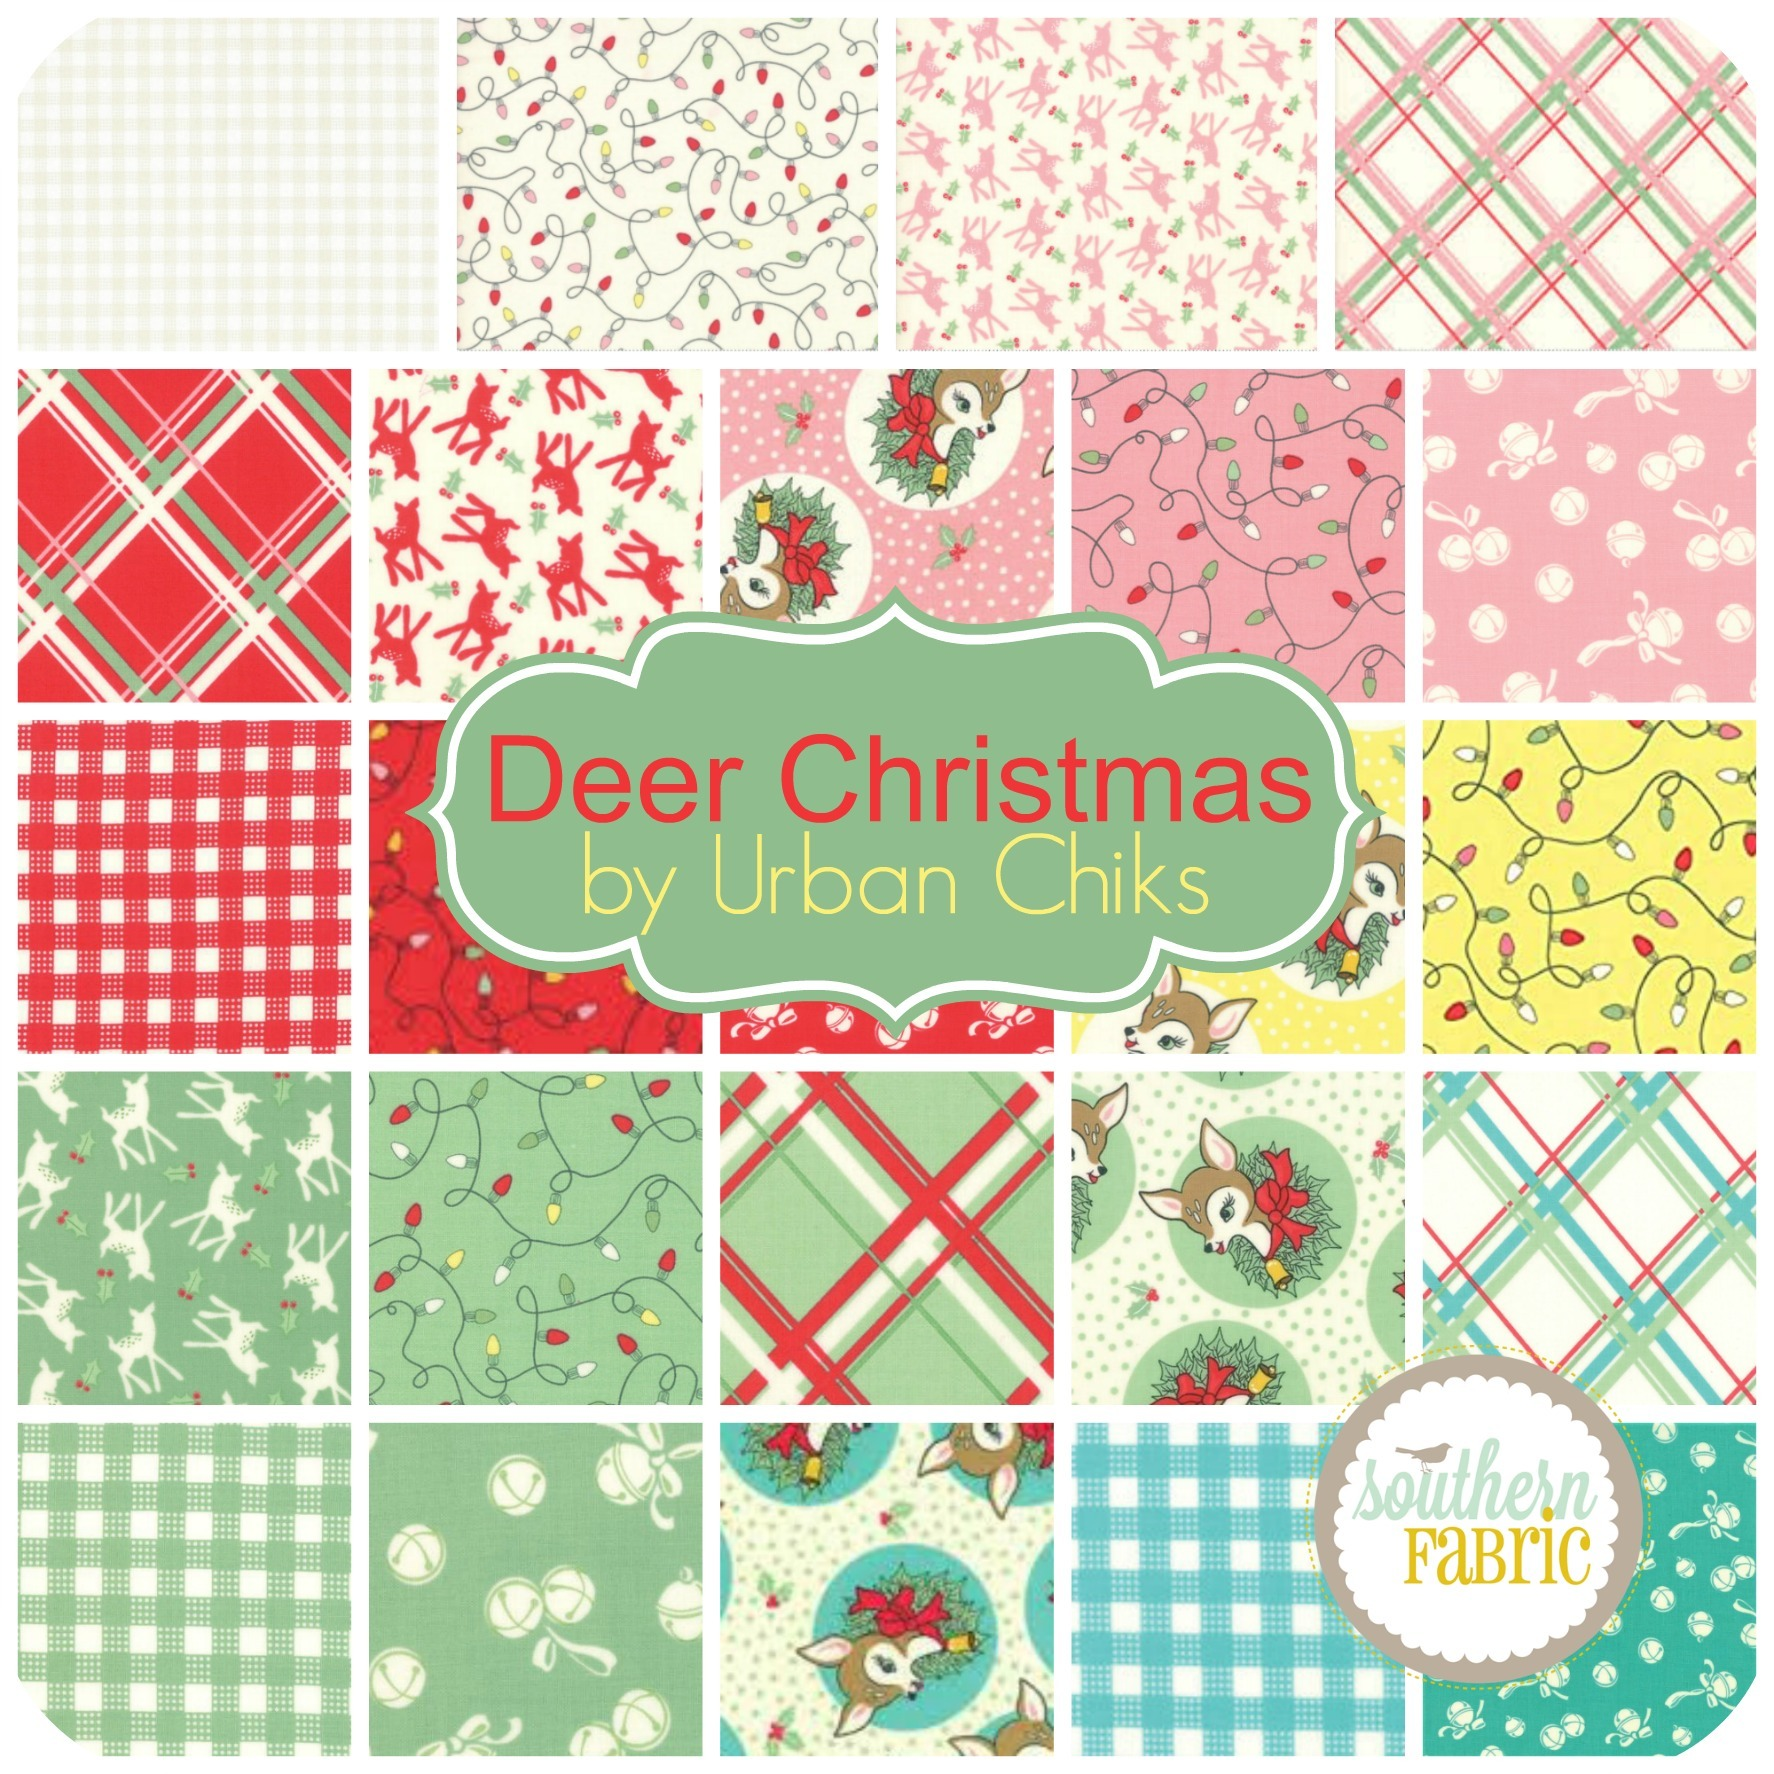 Deer Christmas by Urban Chiks